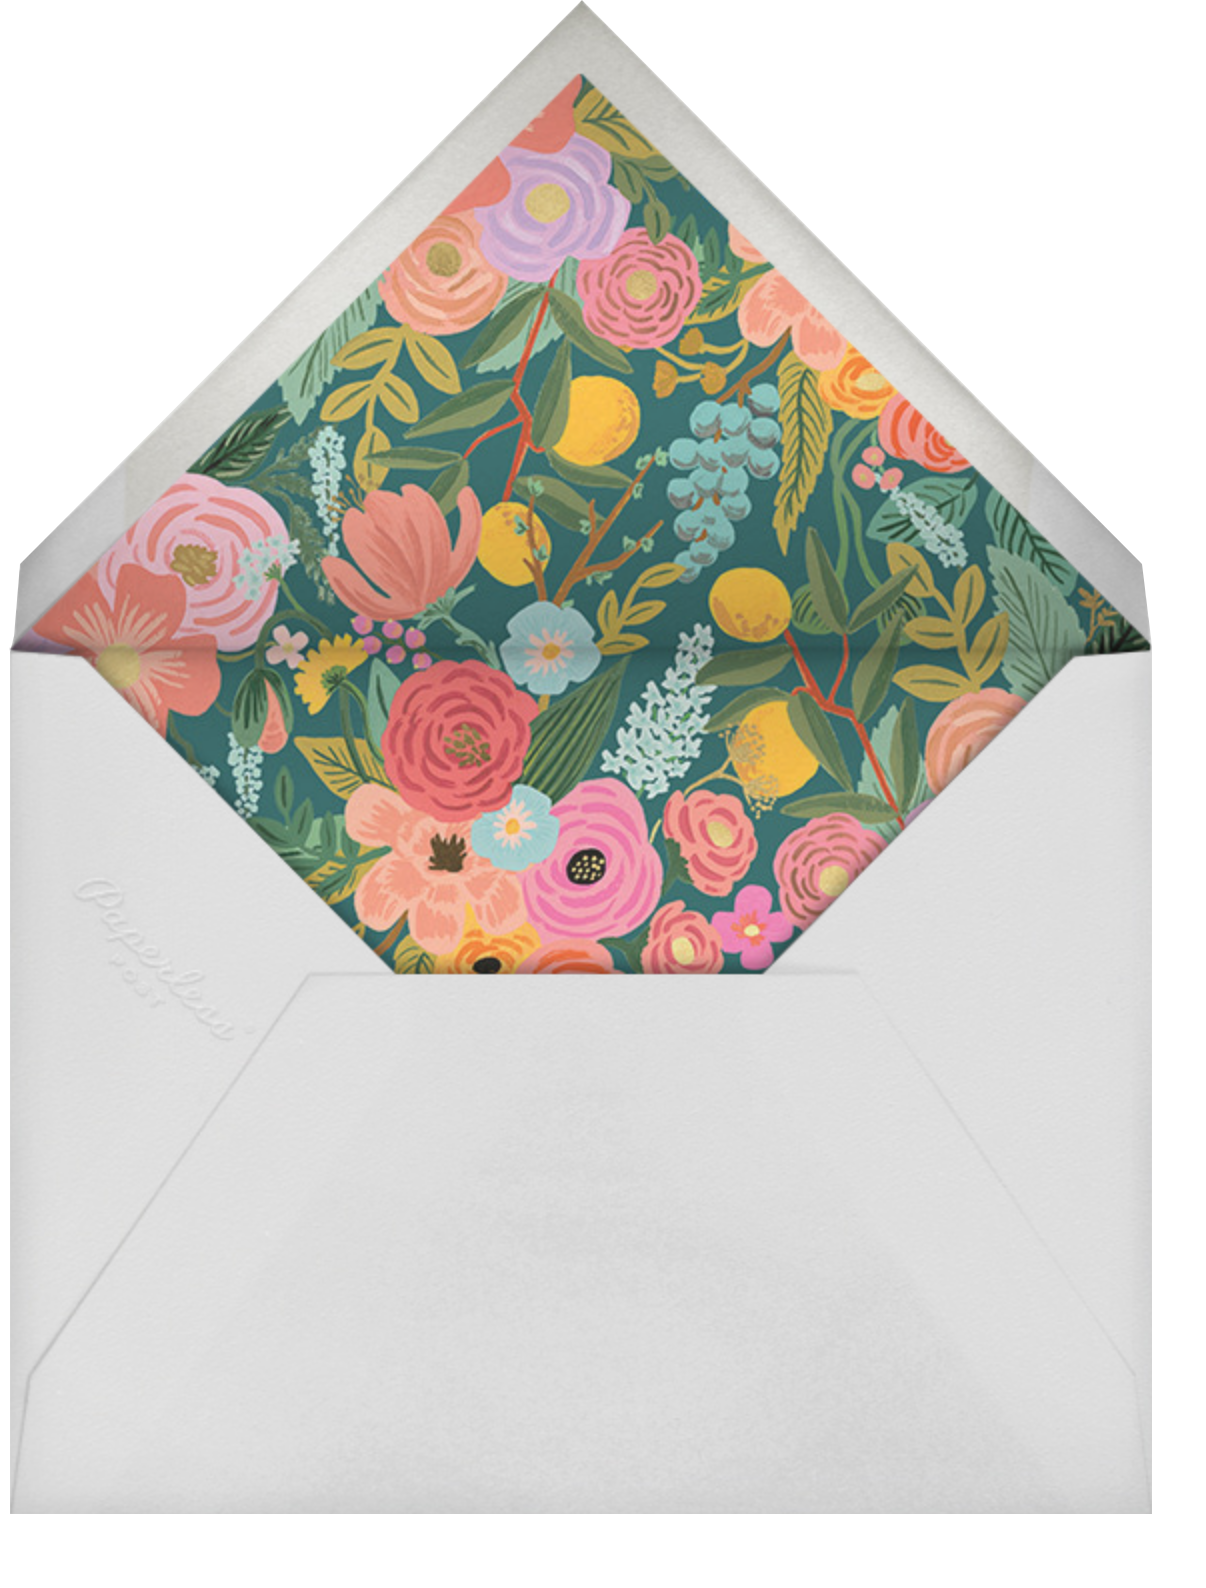 Garden Party (Tall) - Rifle Paper Co. - Envelope